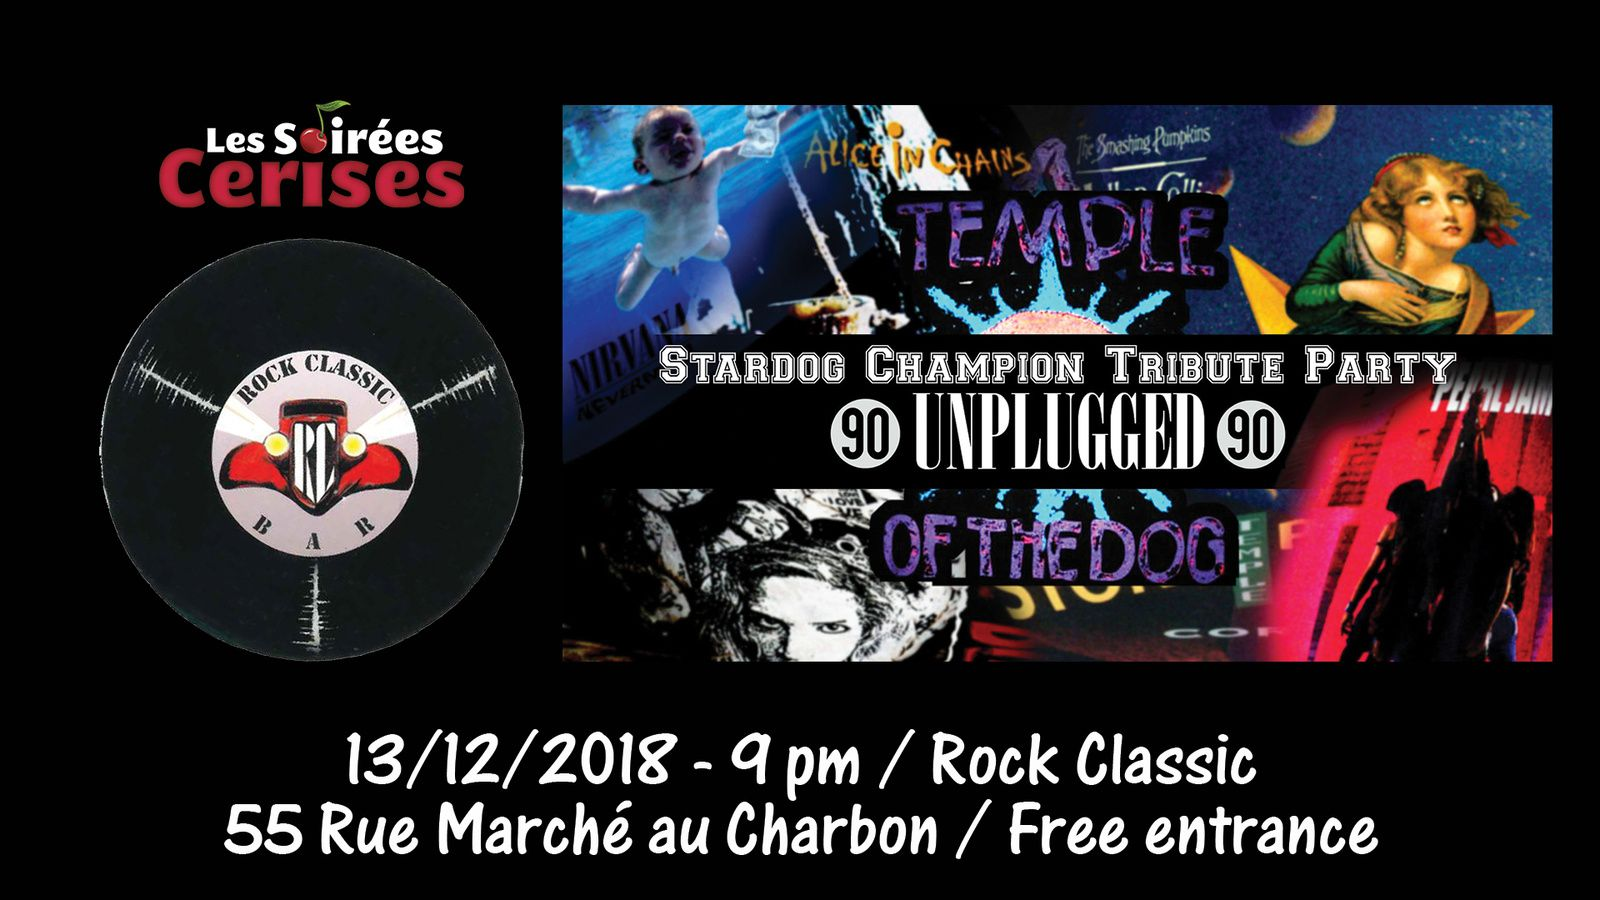 ▶ Stardog Champion tribute party au Rock Classic - 13/12/2018